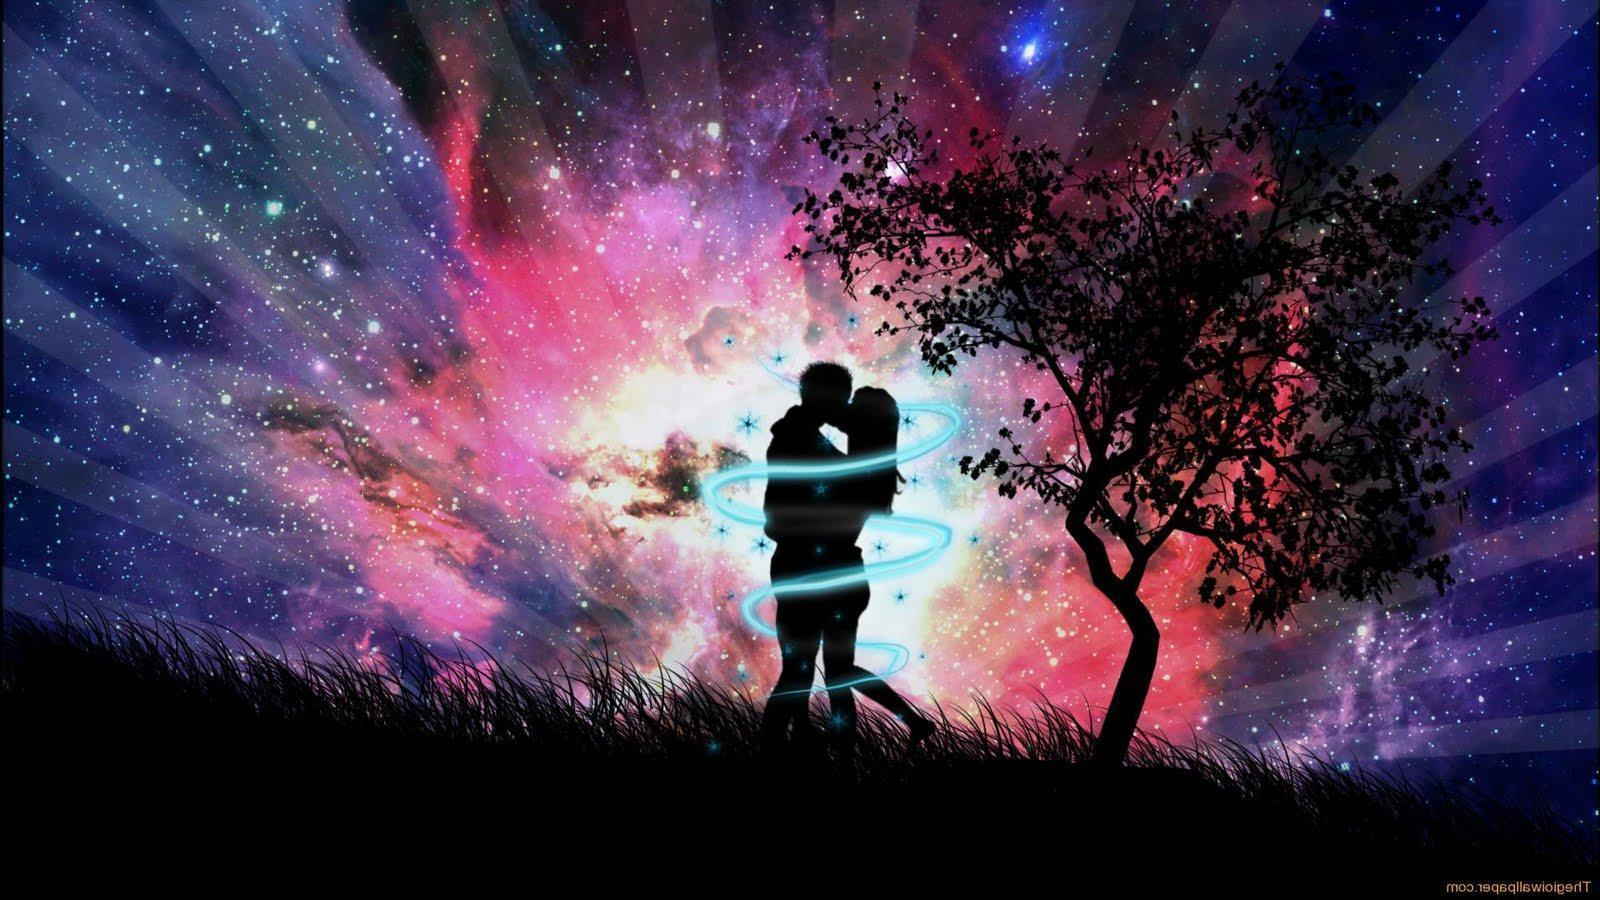 Love Wallpapers Of Kiss : Kiss Love Wallpapers - Wallpaper cave